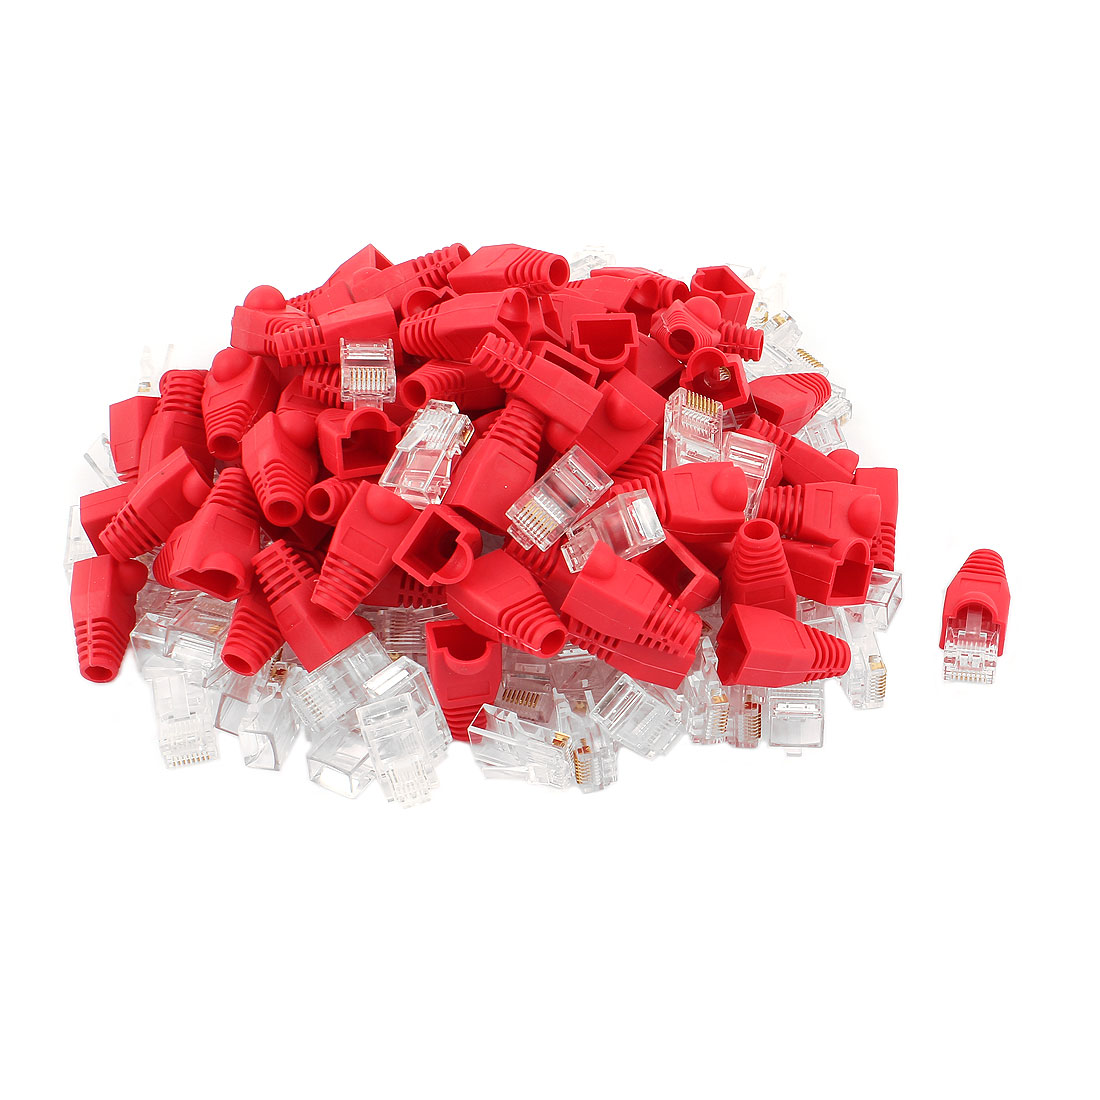 100pcs 8P8C Cat6 Patch RJ45 Head Shielded Modular Jack End Adapter w Boot Protector Red